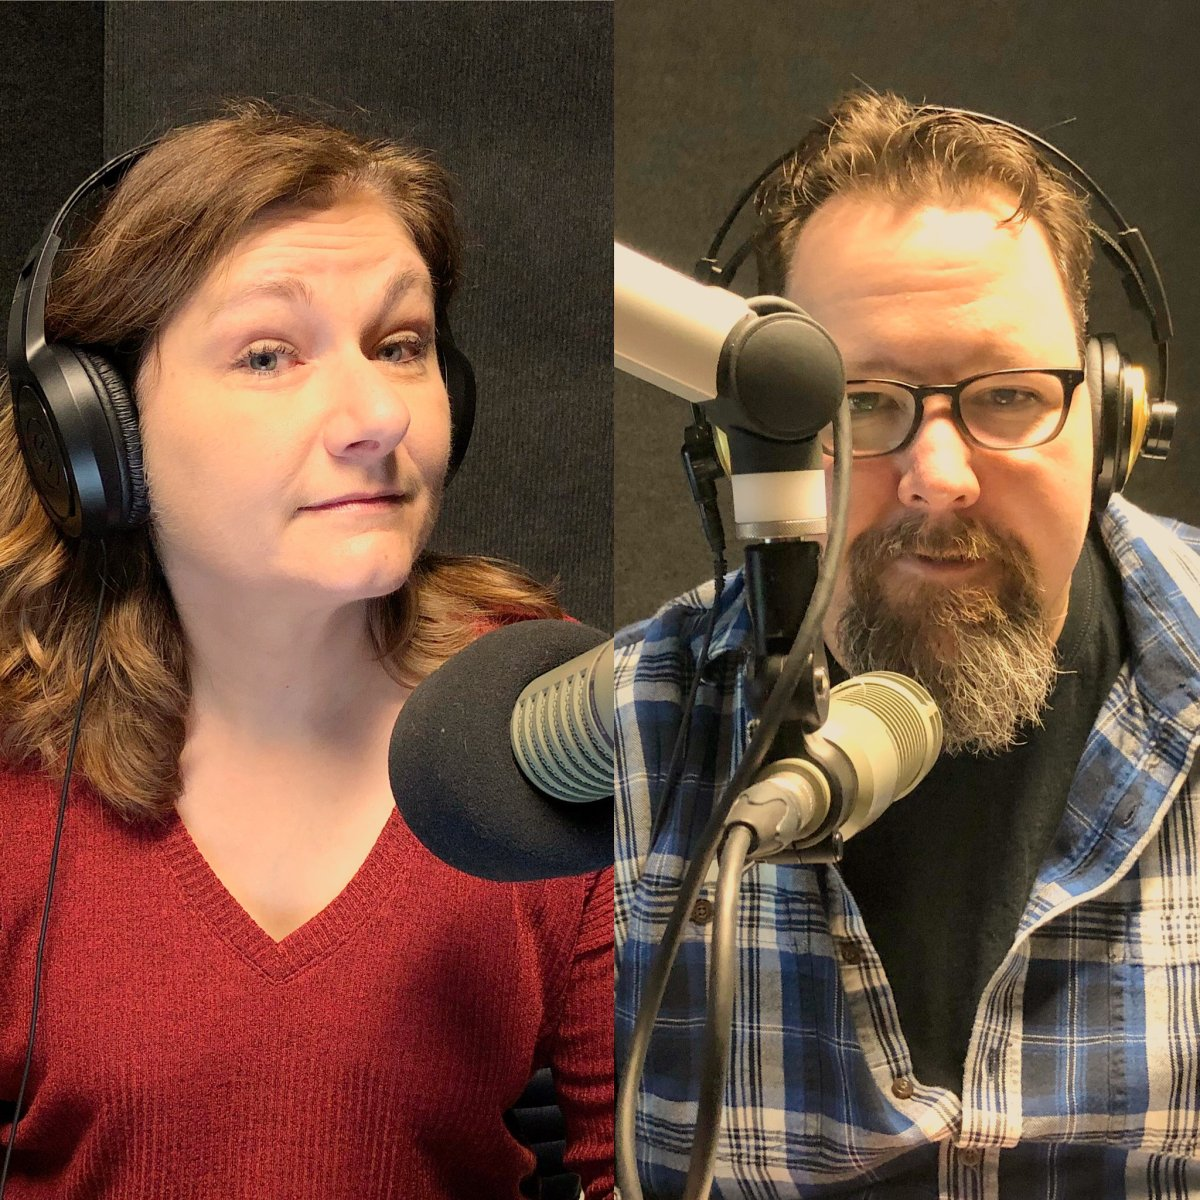 Larry and Rebecca Gifford on living life with Parkinson's during a global pandemic.